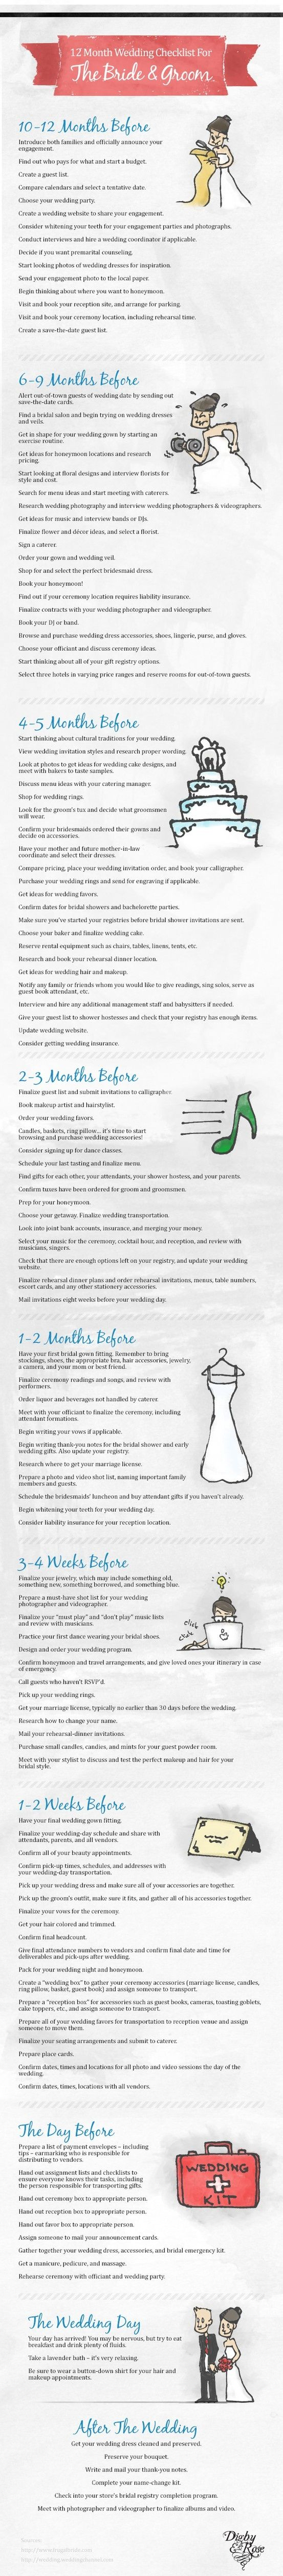 Wedding checklist- 12 months out through to the days after